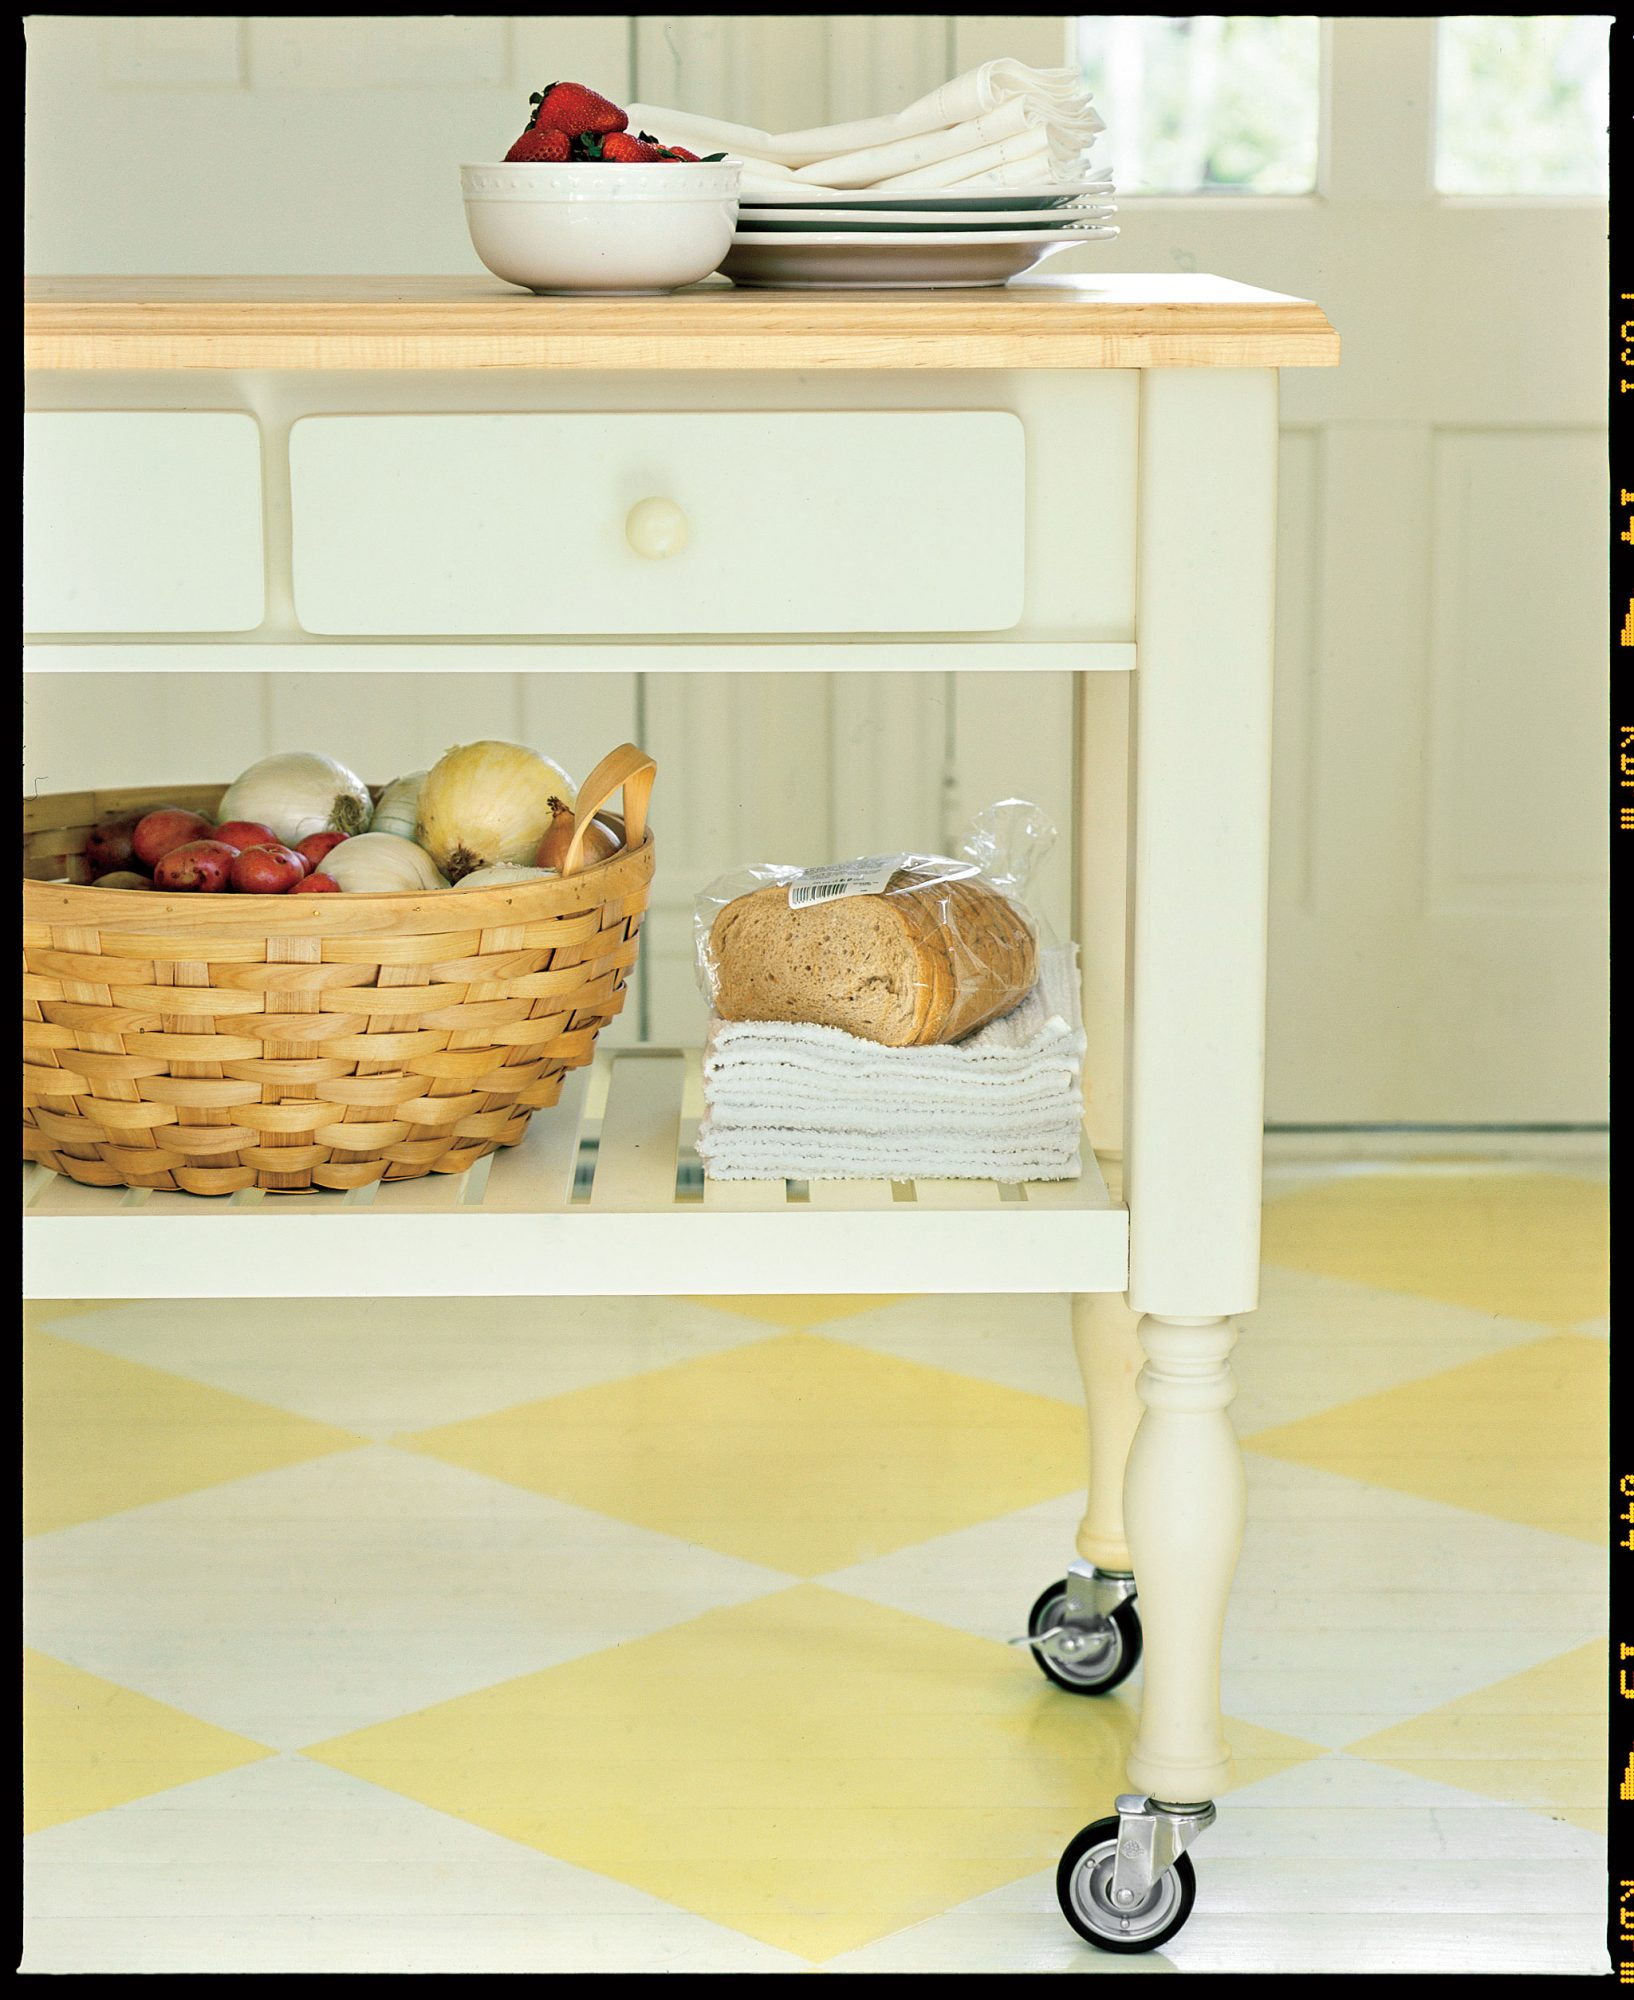 Farm Kitchen Remodeling Ideas: Island on Casters